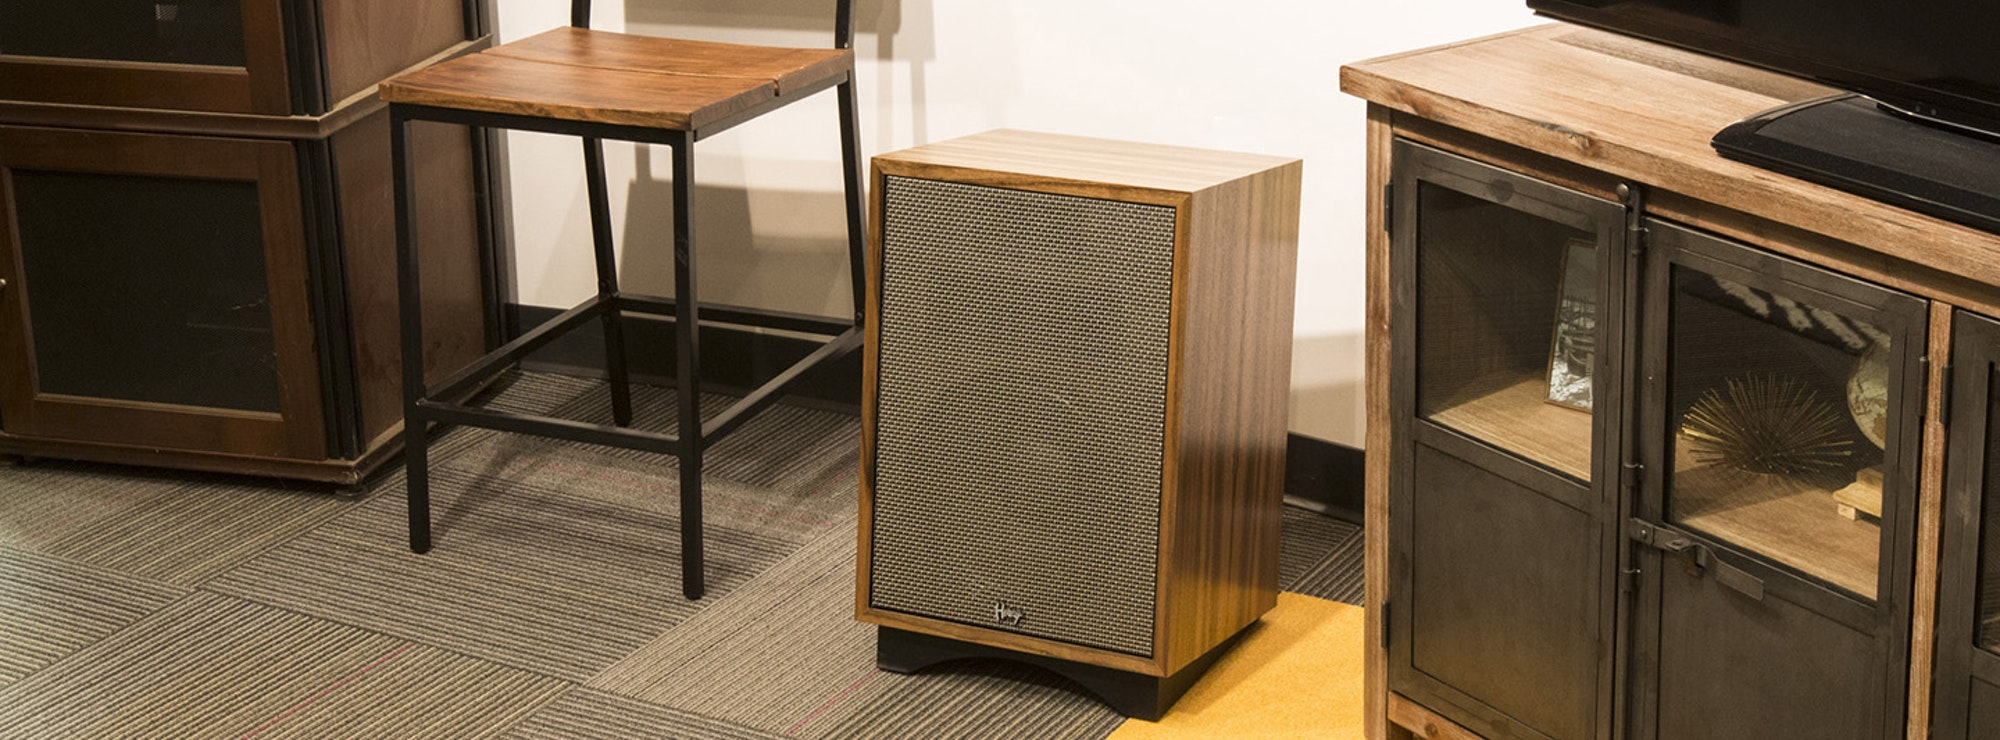 Klipsch Heresy next to a chair and cabinet